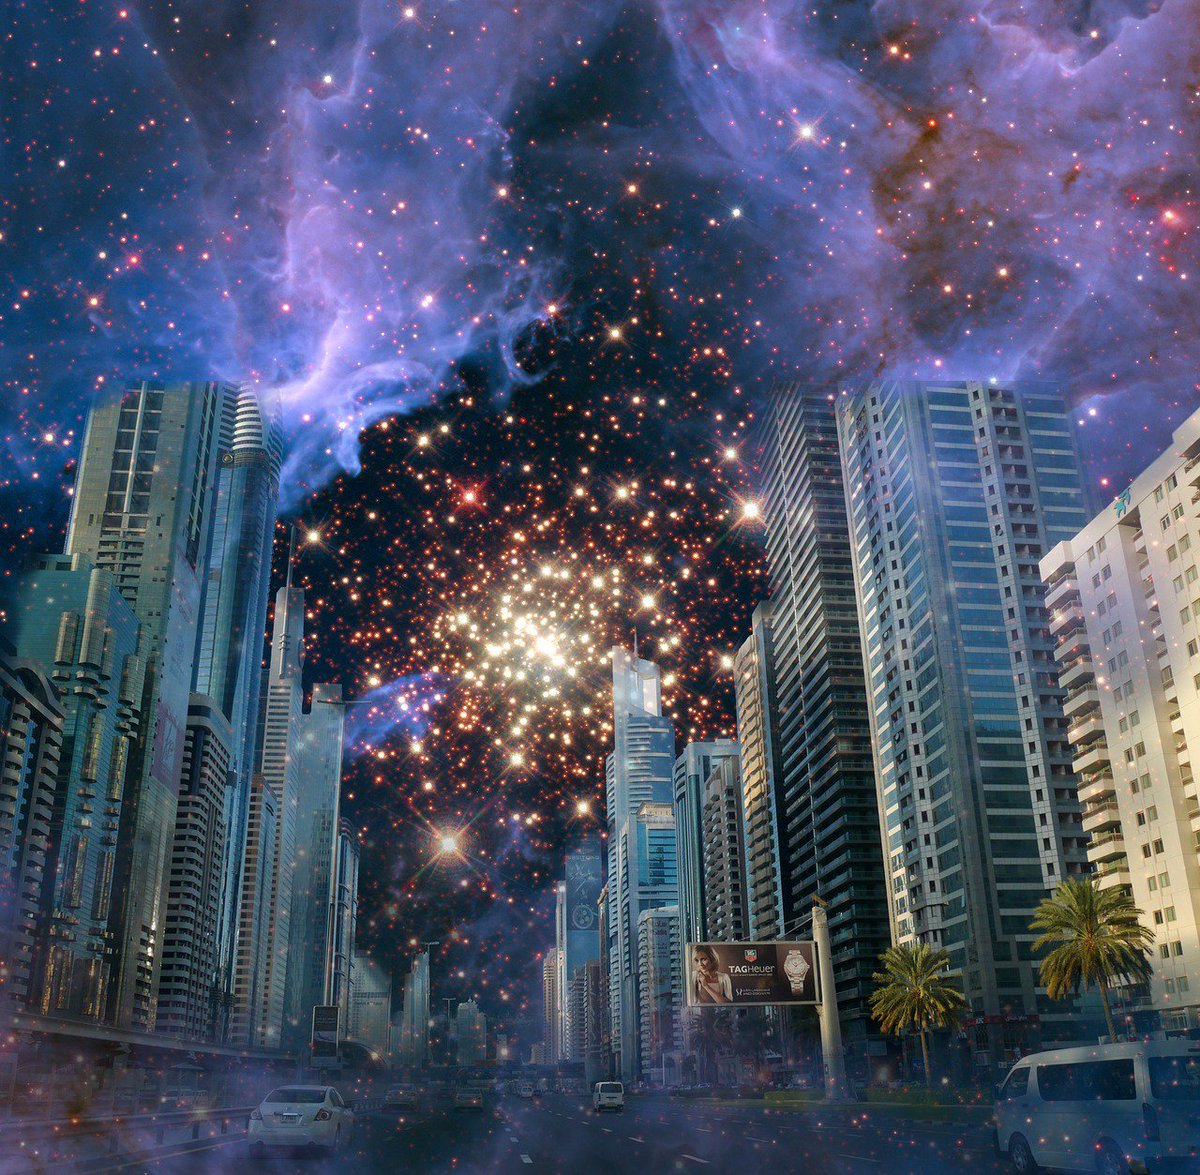 City! Garden of hearts, of souls. My eyes wander through your concrete tendrils, Hunched hills, spiraling alleyways, Glacial eyed windows meeting dreaming streets, Thirsty Avenues thrusting their luster against the burning blue fire of the sky.~E.Jacobs #city #night #stars #art